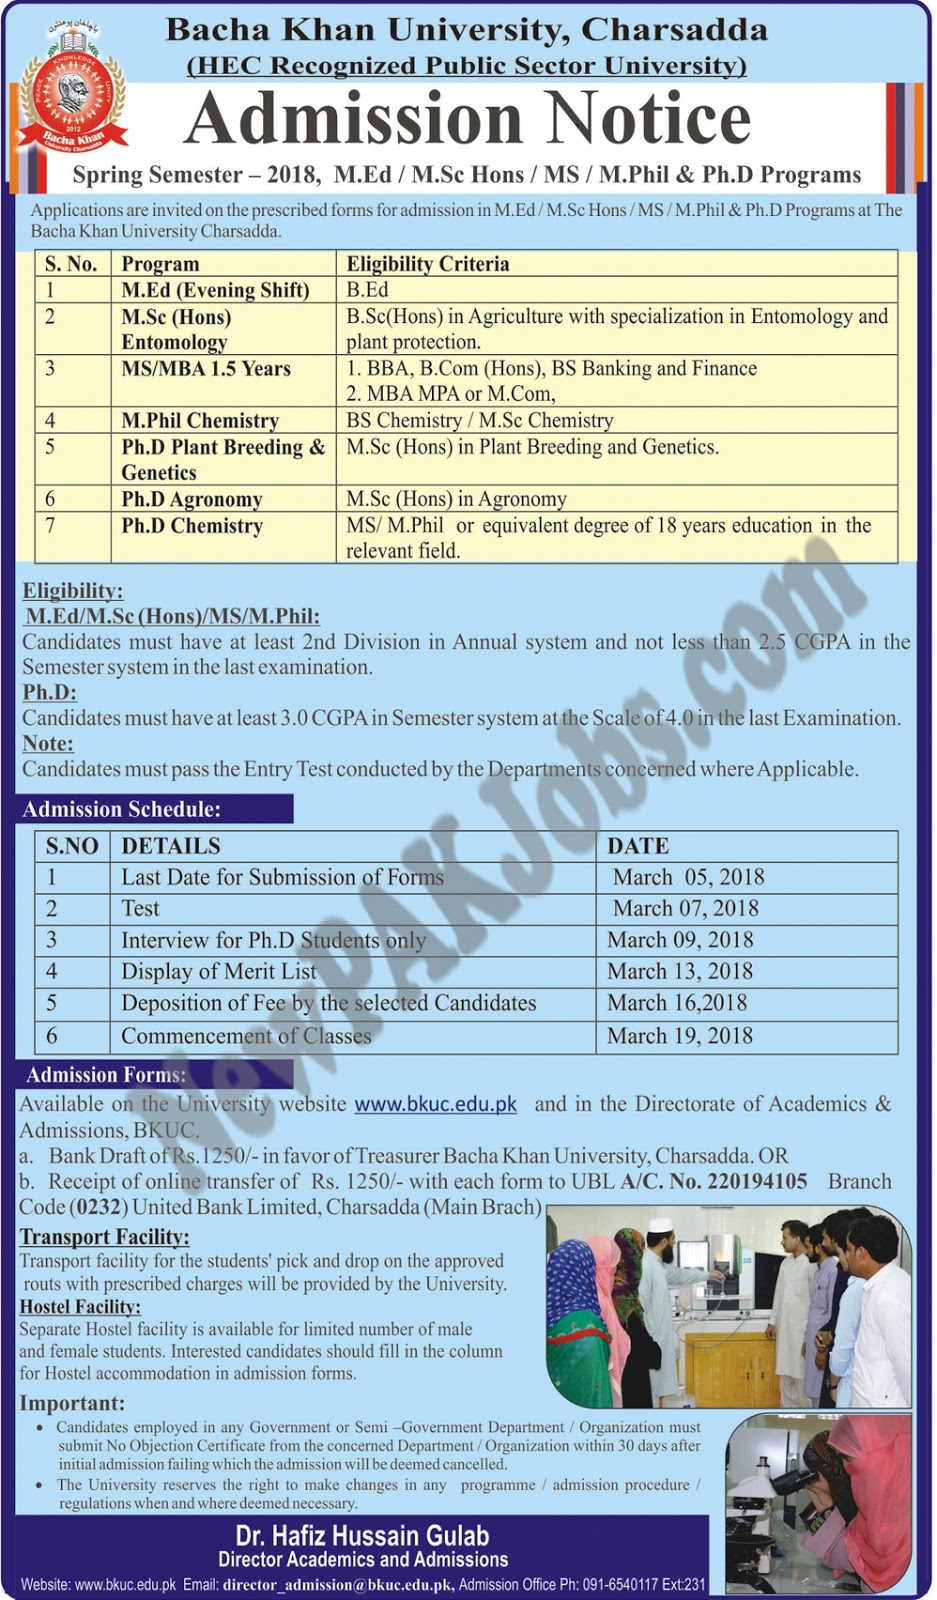 Bacha Khan University Admissions Notice for Spring Smester 2018, Charsadda